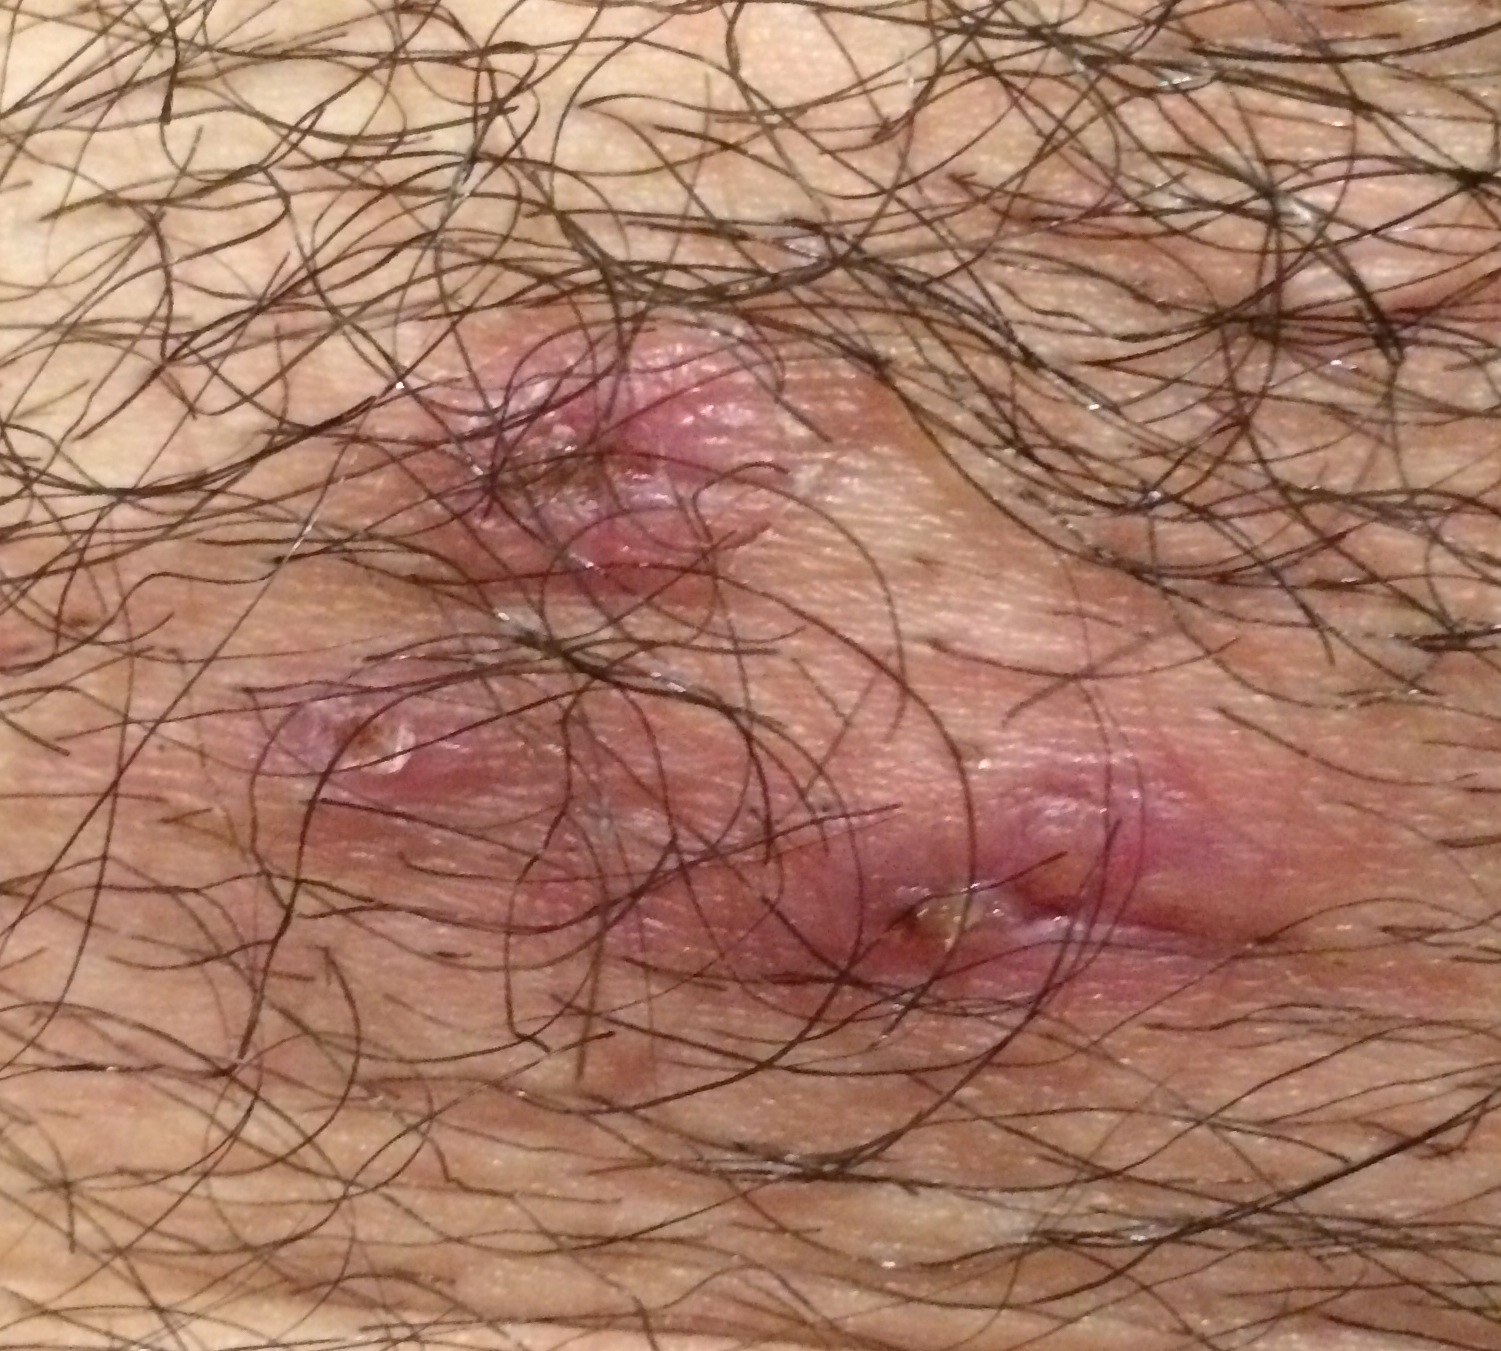 Male Hairy Pubic Area 110